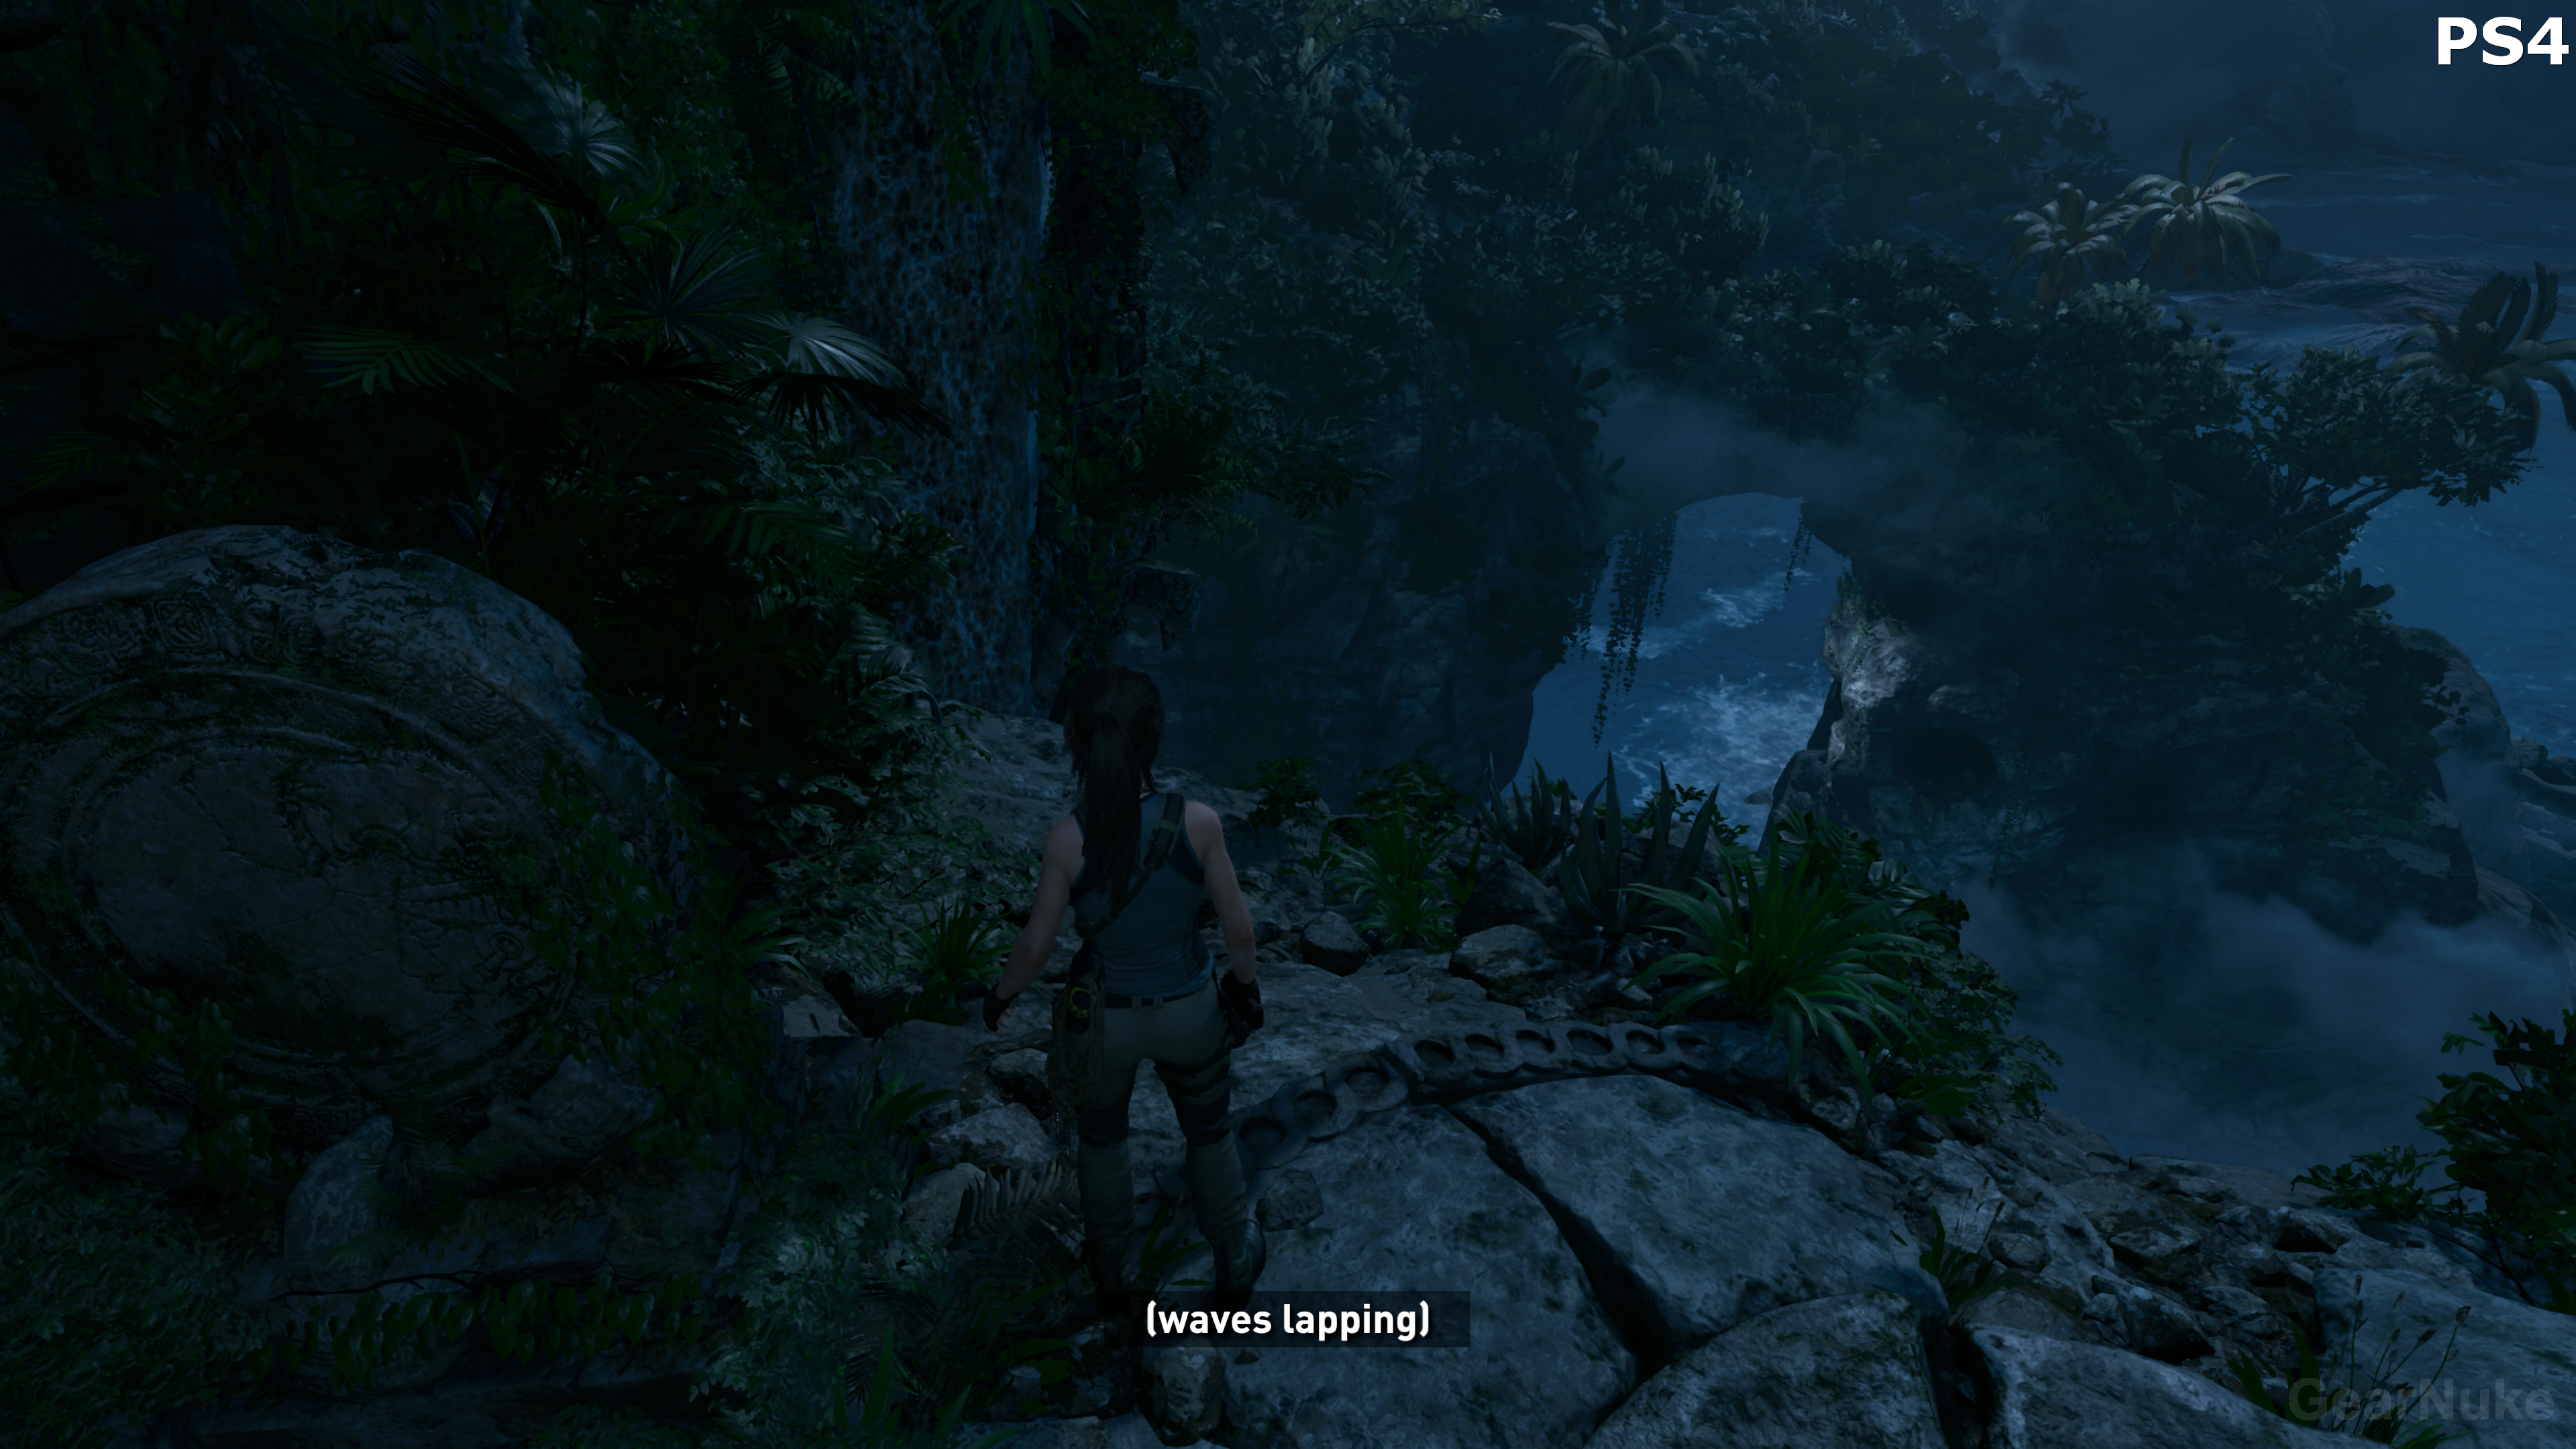 shadow-of-the-tomb-raider-ps4-pro-vs-xbox-one-x-9-2